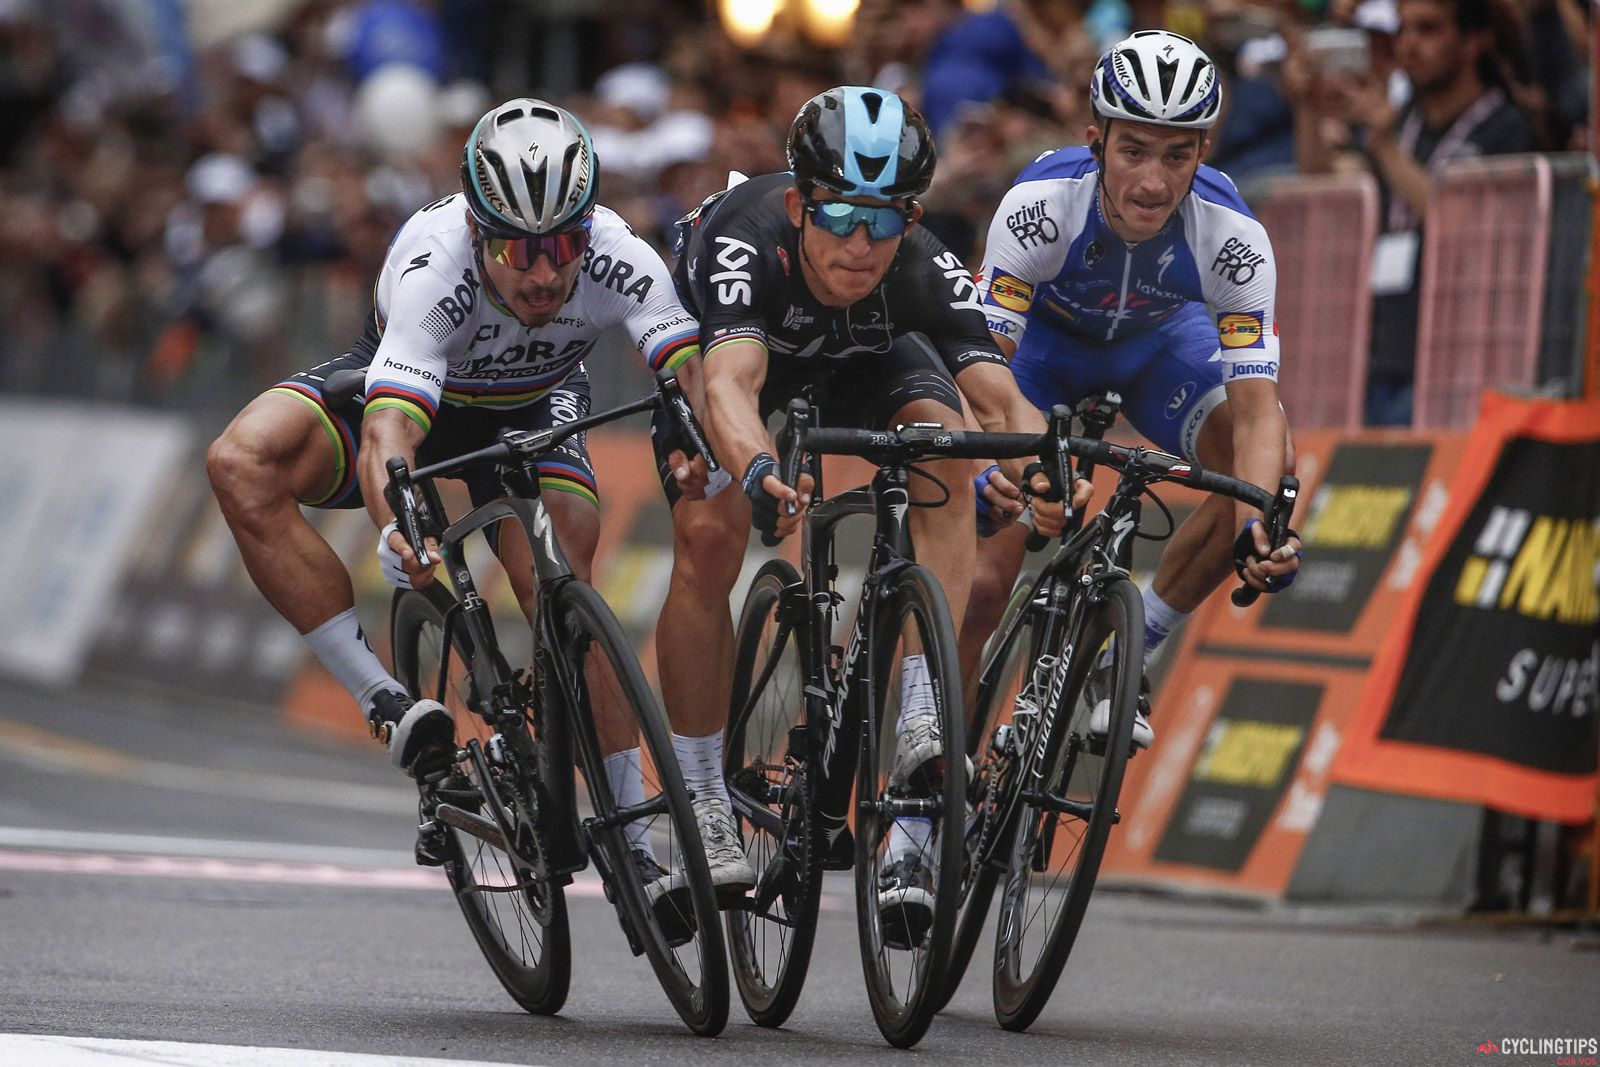 Alaphilippe made the winning move in this year's Milan-San Remo and finished third behind Kwiatkowski and Sagan.